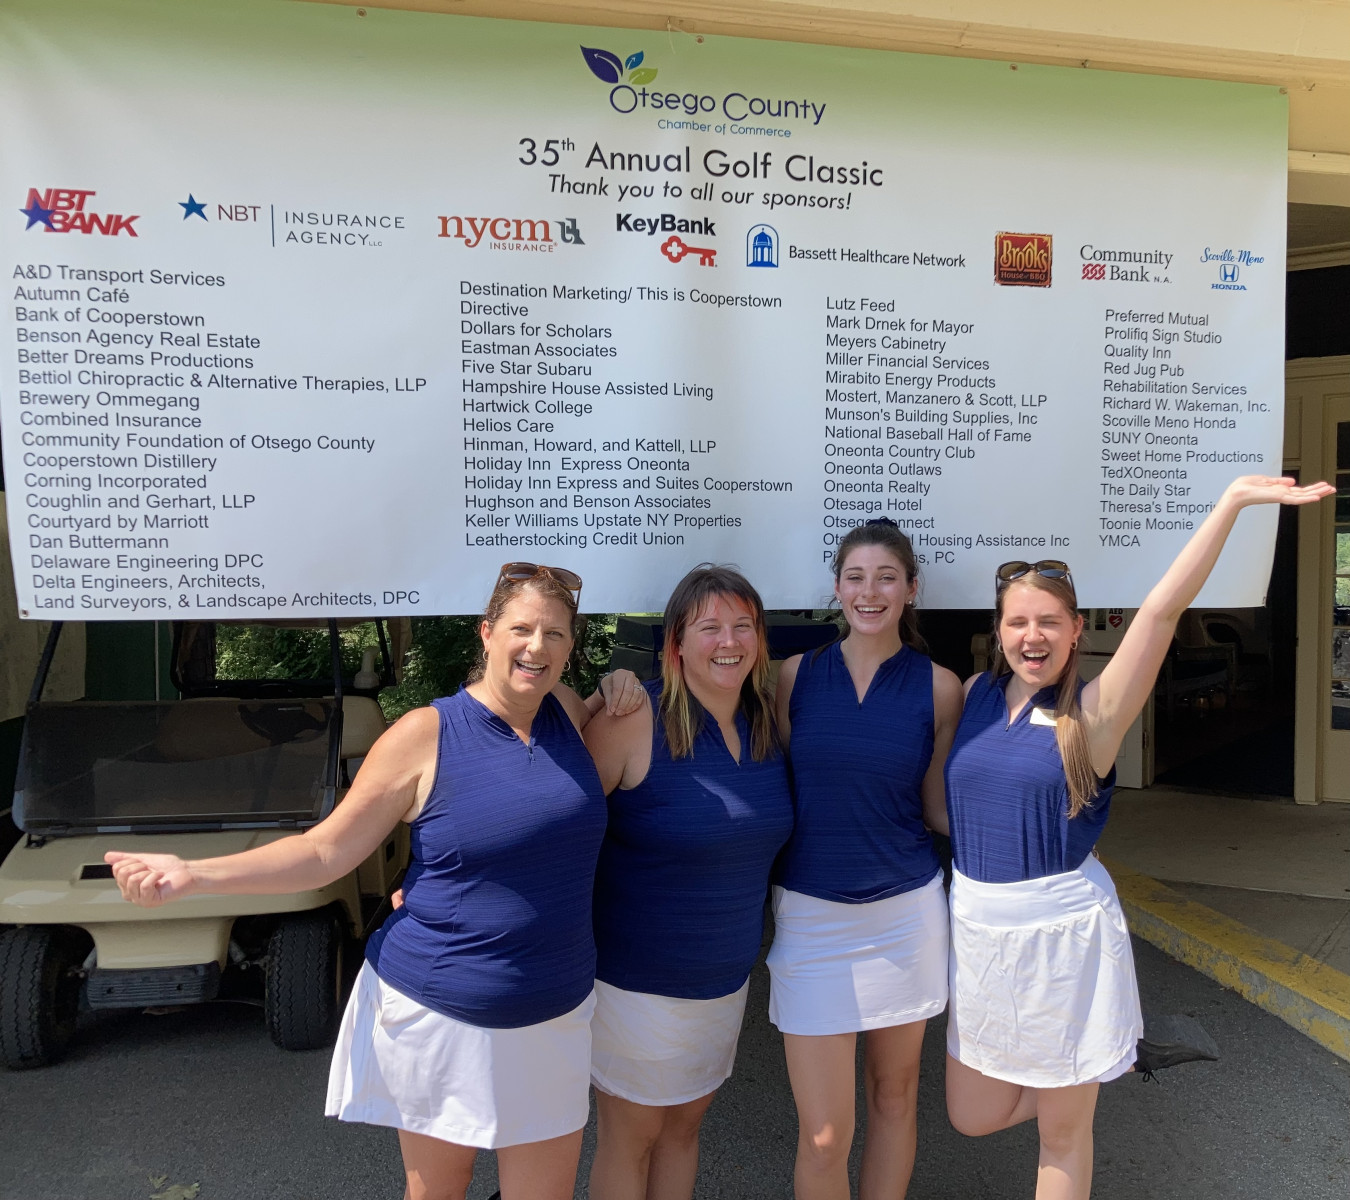 35th Annual Golf Classic a success!  Congrats to all the winners, & thank you to all the sponsors!